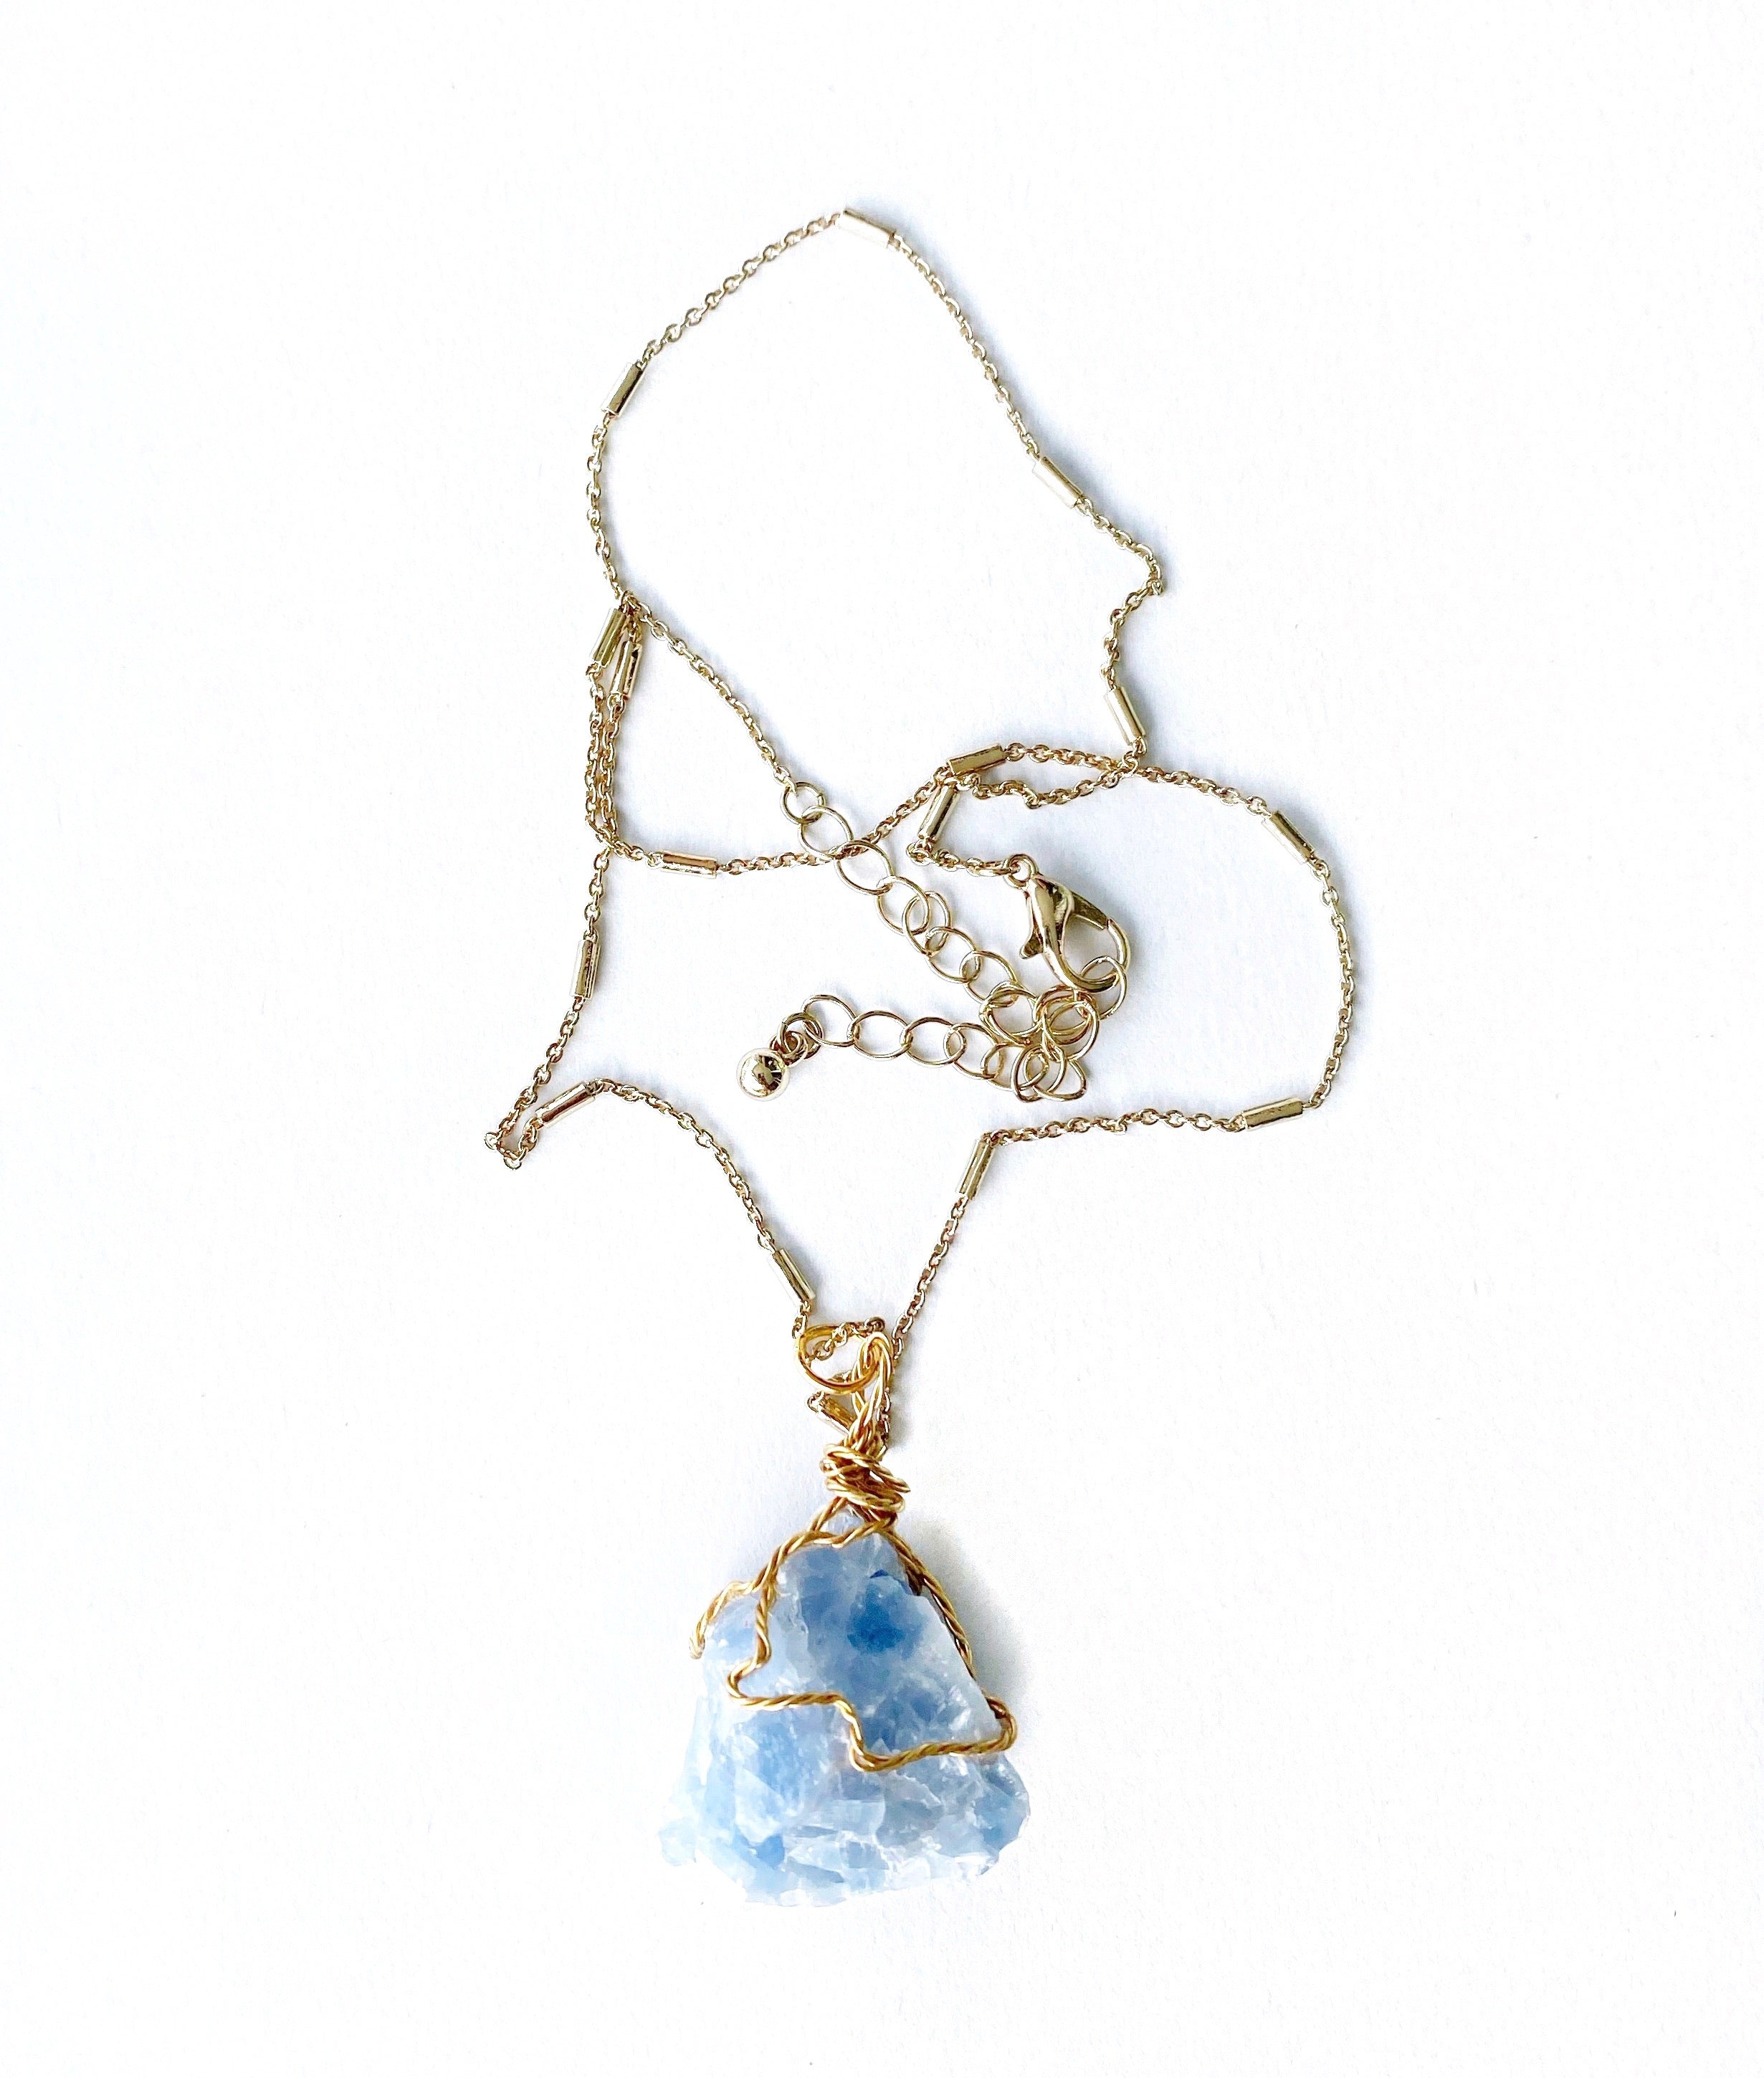 Rough Blue Calcite Gemstone Crystal Gold Necklace